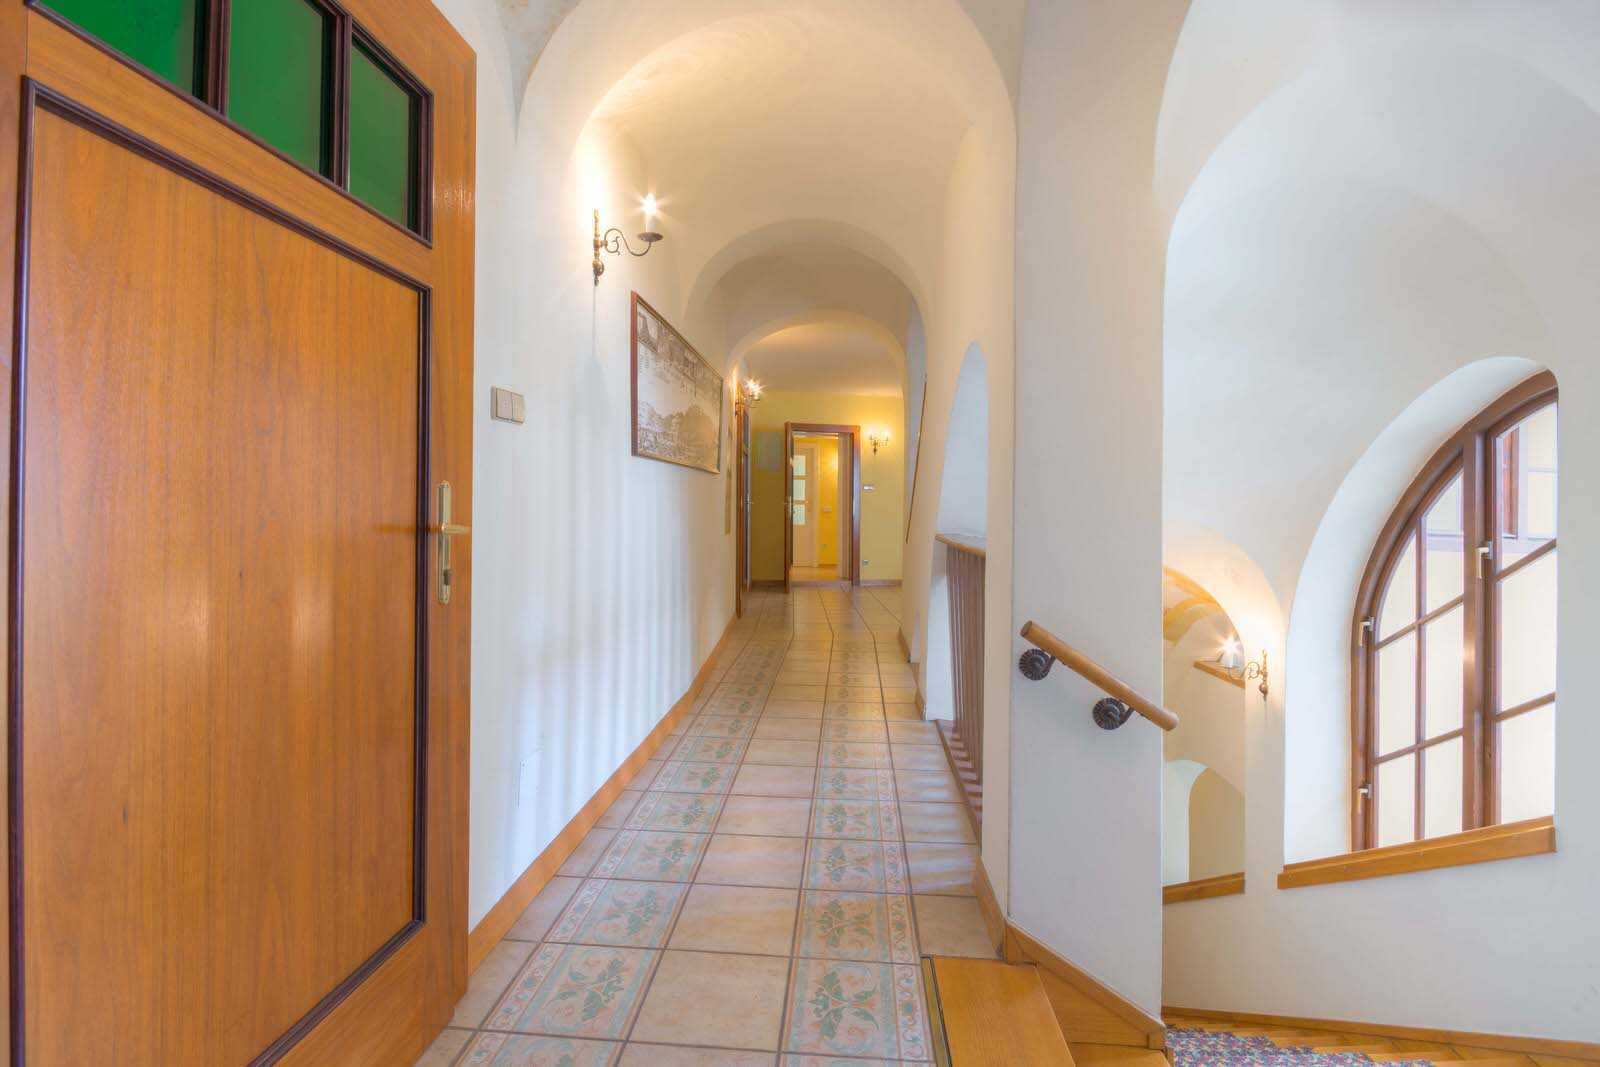 The hallway features rounded arches and tiled floors.